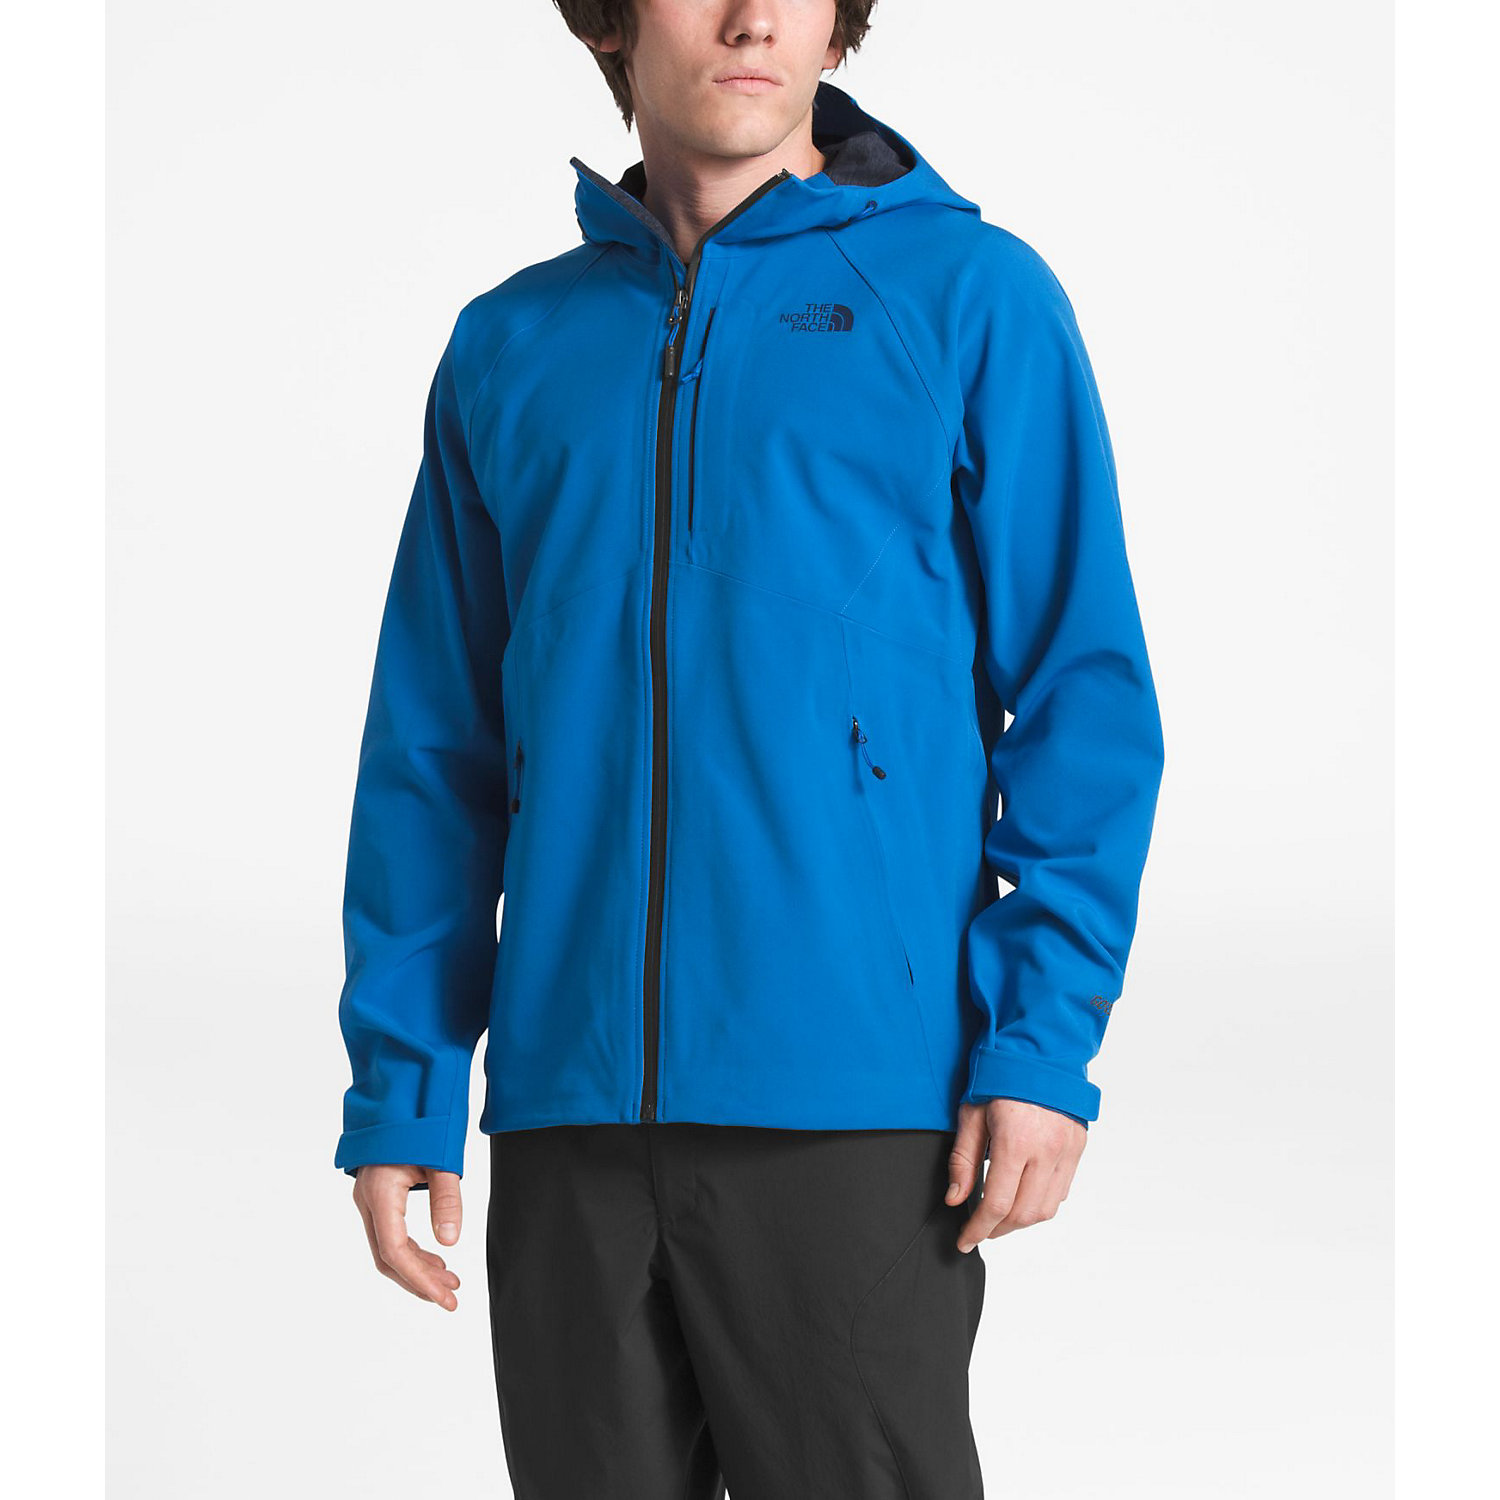 88e0b5897 The North Face Men's Apex Flex GTX Jacket